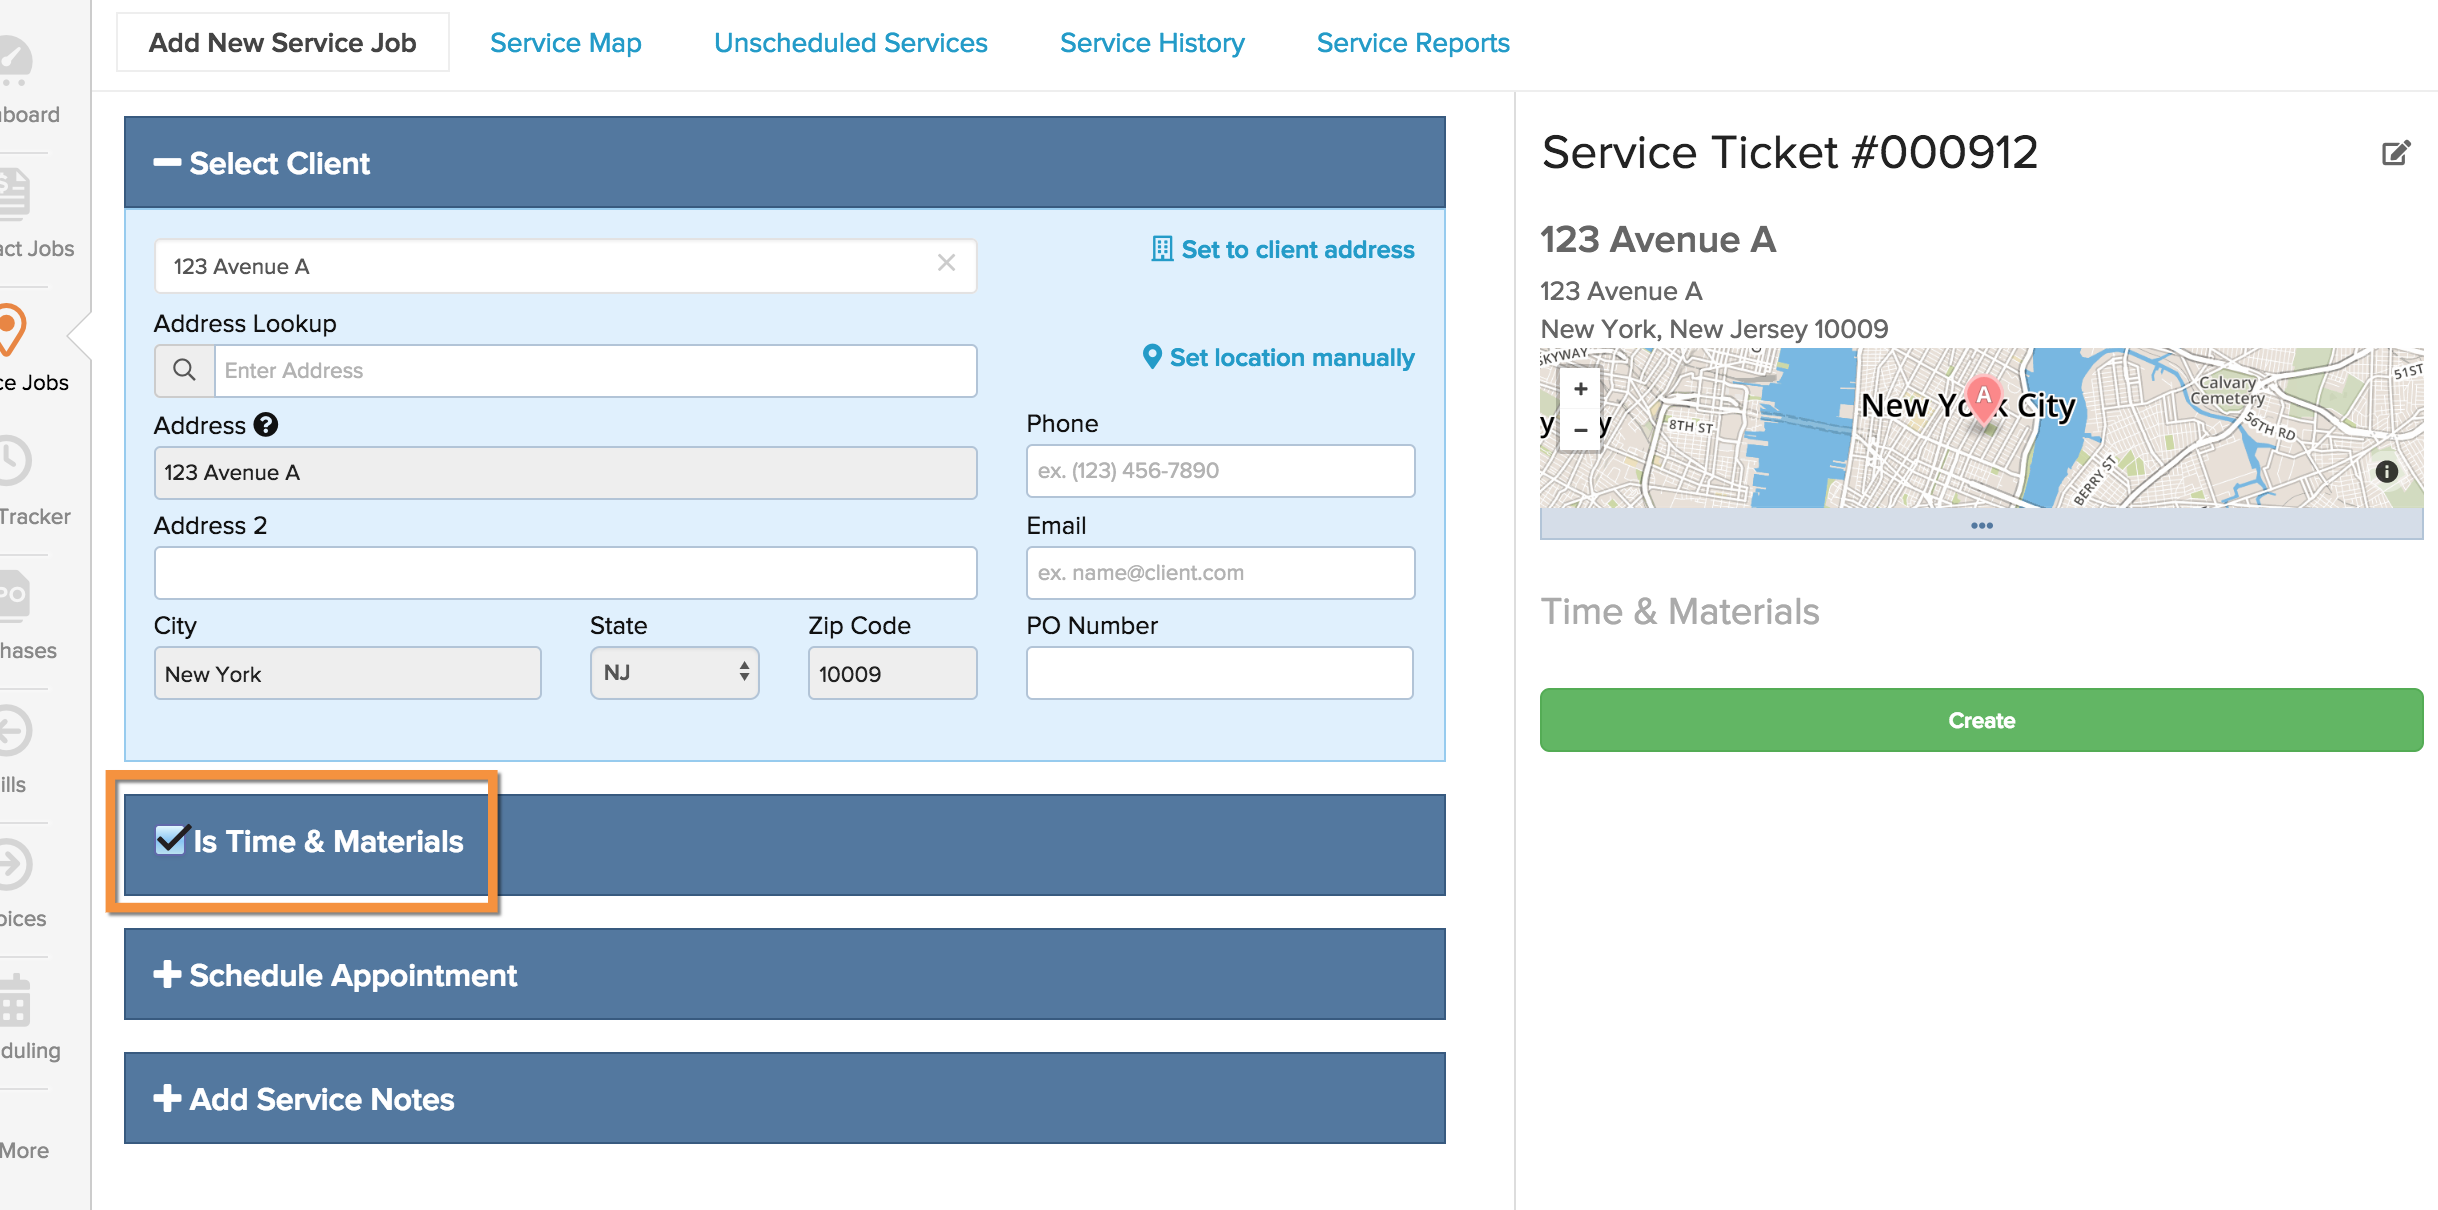 Screen-Shot-2018-01-15-at-3.54.07-PM How Do I Switch a Service Ticket from Pending to Scheduled?